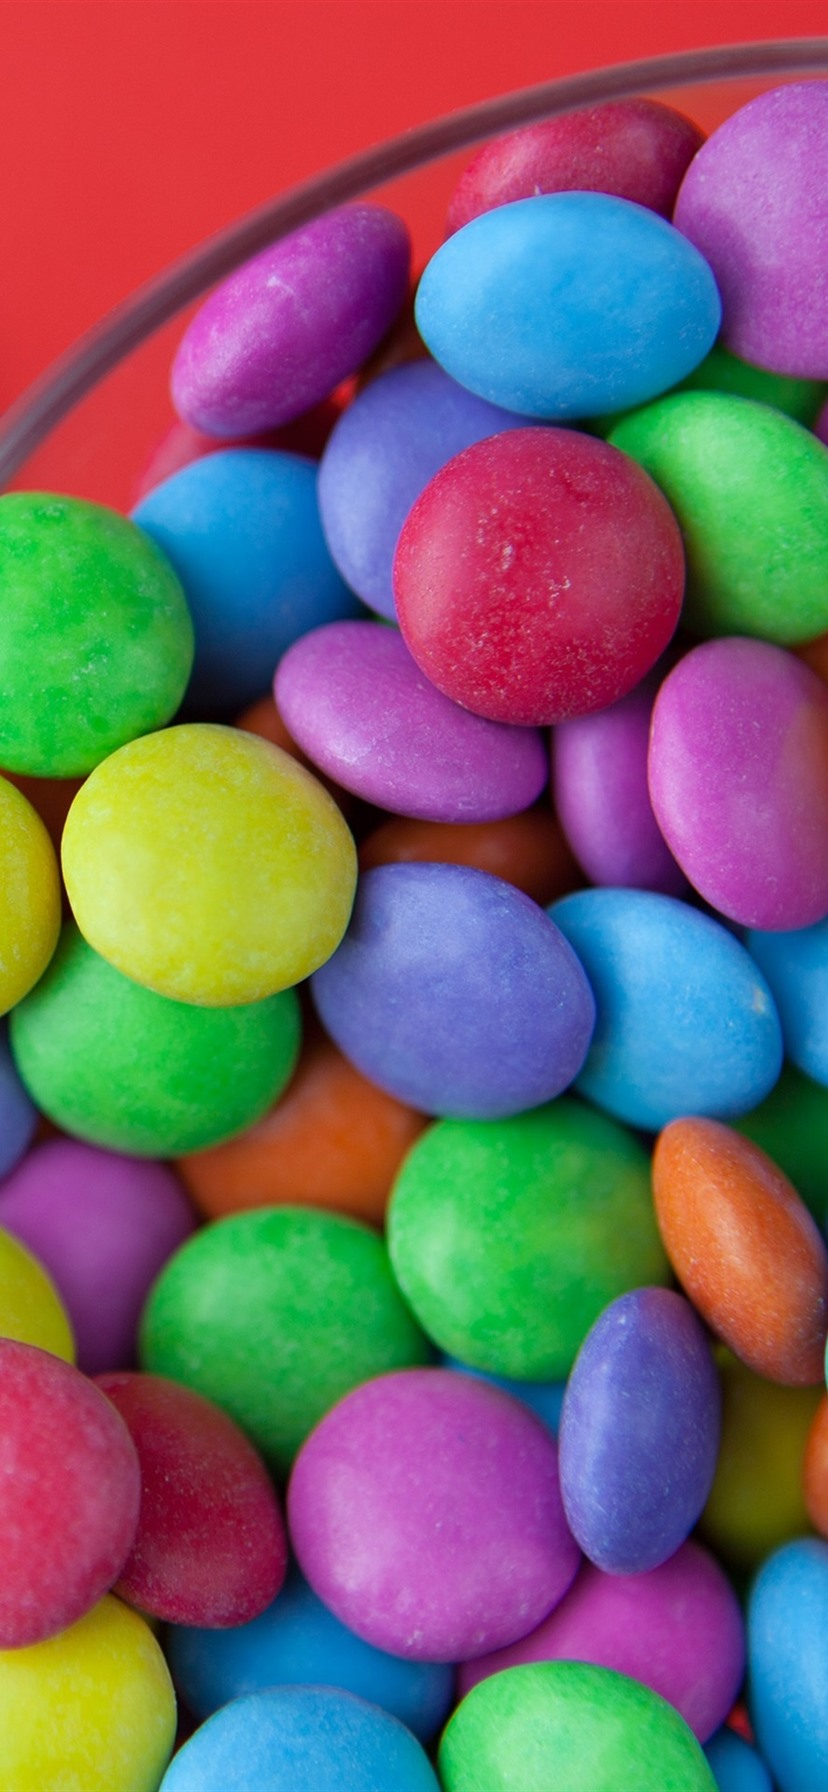 Colorful Sweet Candy Sugar Pills 1080x1920 Iphone 8 7 6 6s